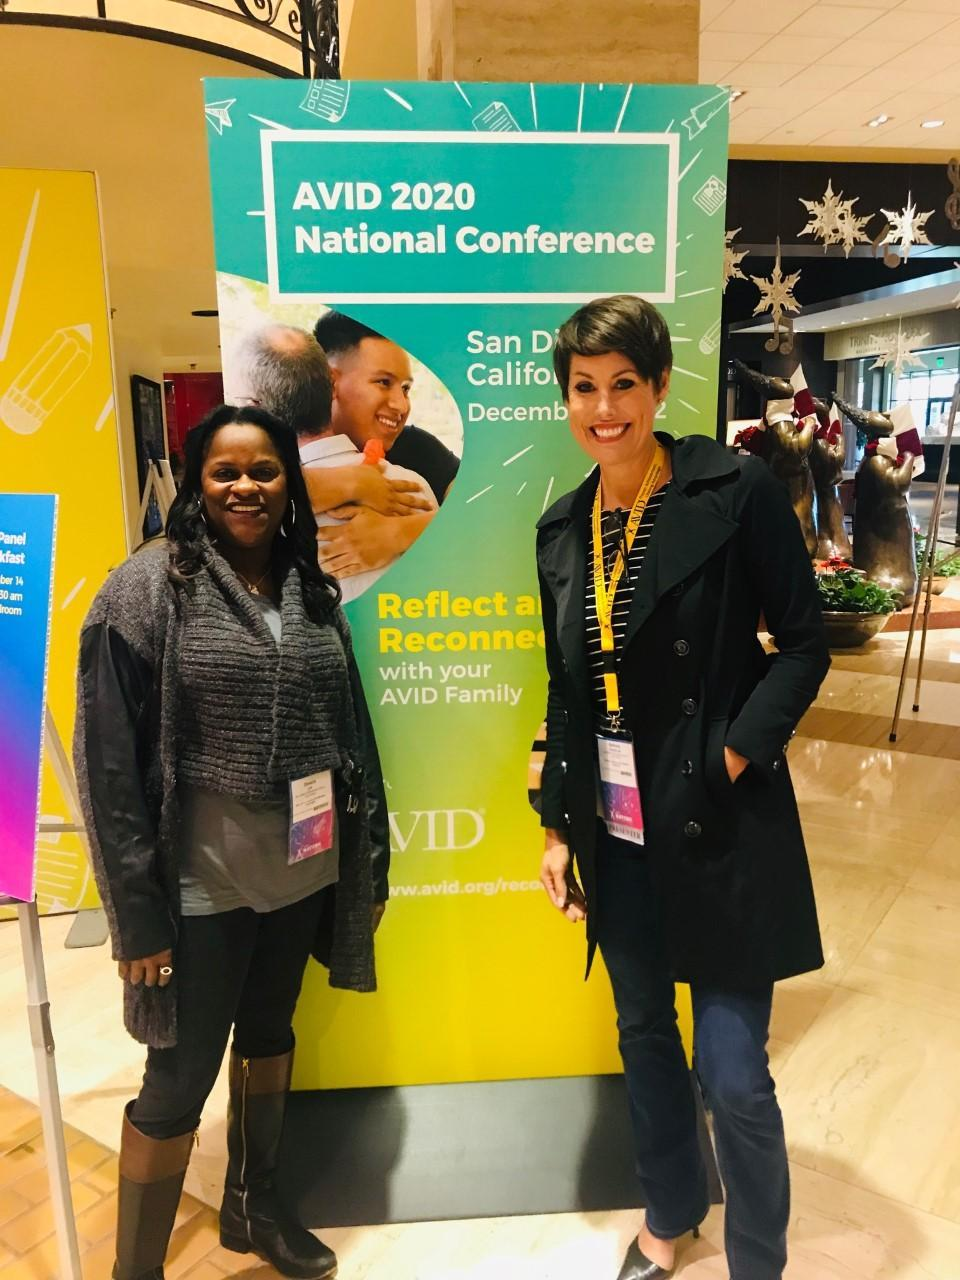 Dr. Lee and AVID TOSA Bethany Glazebrook at the National Conference in Dallas December 2019